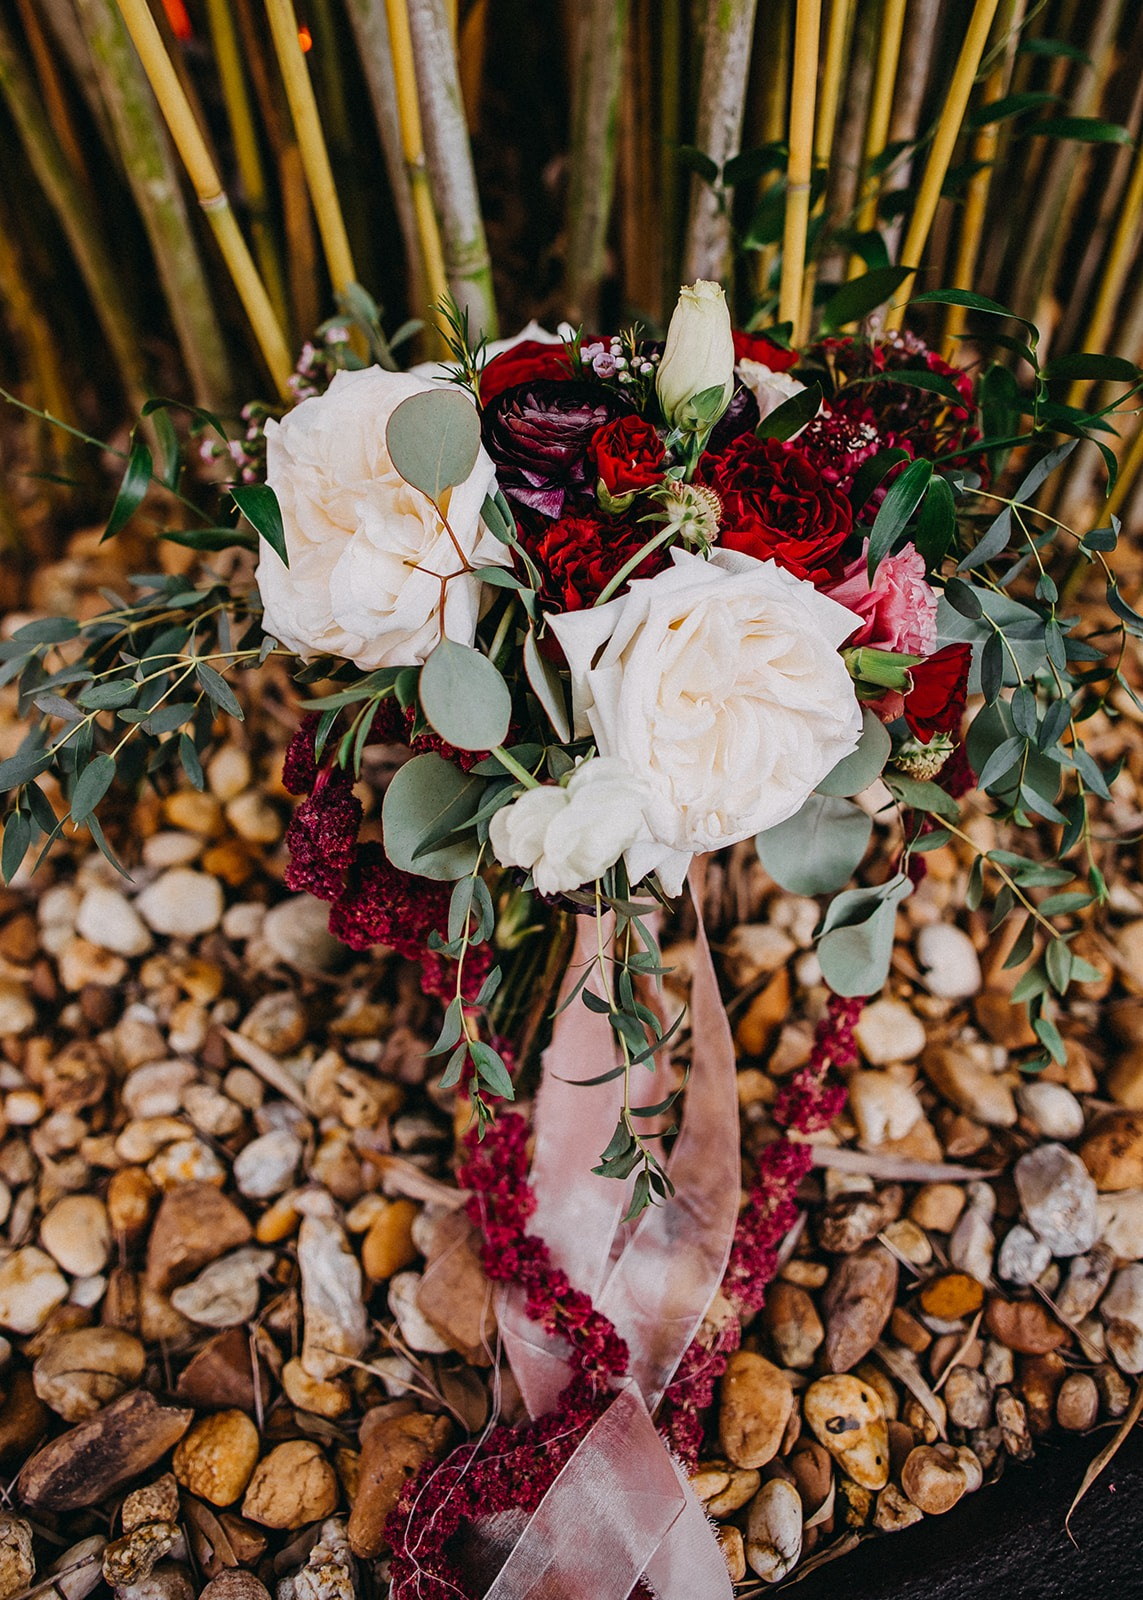 Elegant Pink, White, Red, Purple Floral Bouquet in Tampa Bay Bamboo Courtyard | St. Pete Historic Wedding Venue NOVA 535